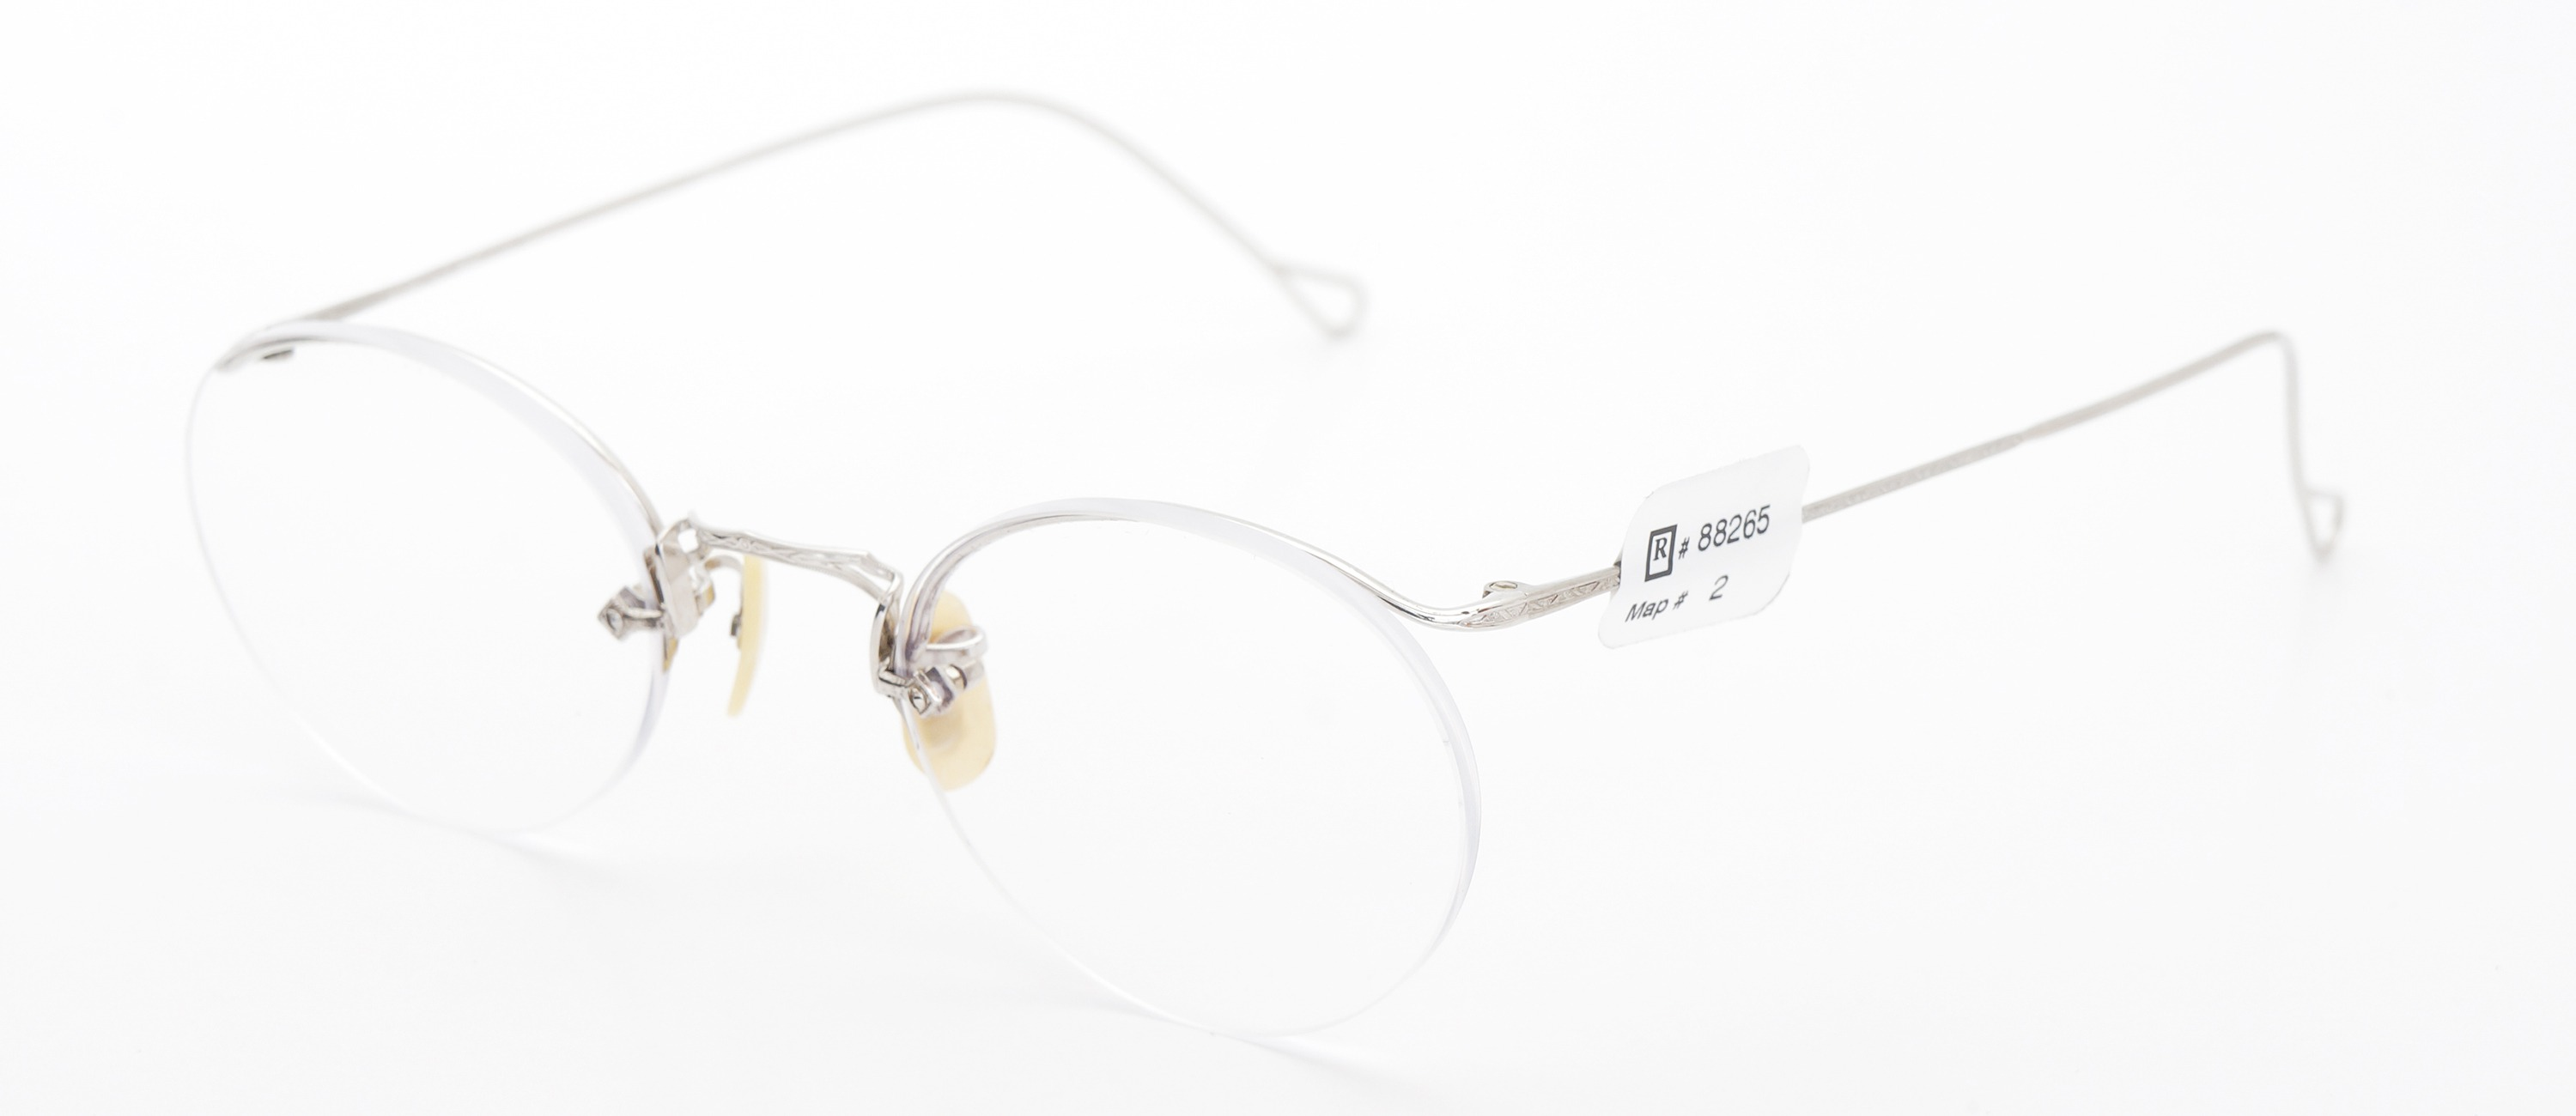 The Spectacle メガネ 1938 American Optical Numont Ful-Vue P-6 WG 45-23 イメージ3